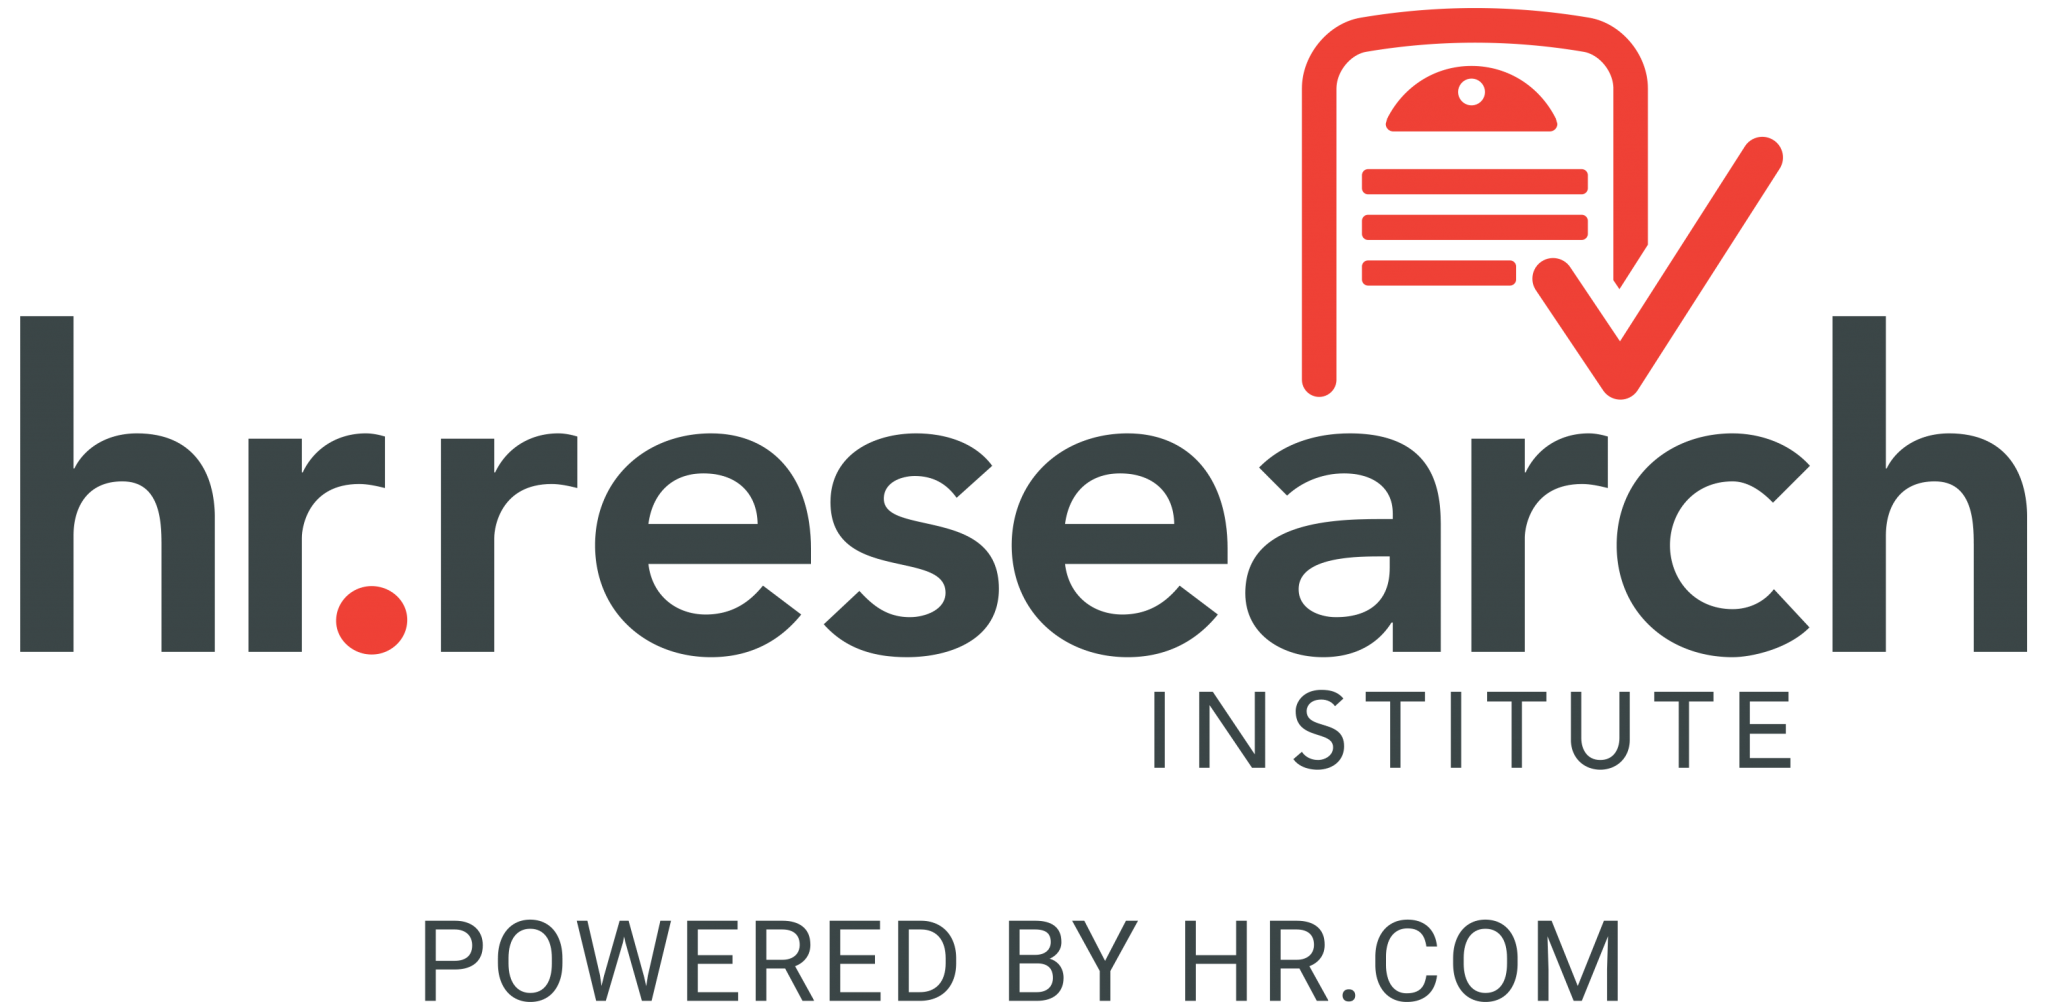 More Focus Needed on Post-Hire Processes to Overcome Workforce Management Challenges Prompted by the Pandemic – According to New Study by the HR Research Institute and SkillSurvey